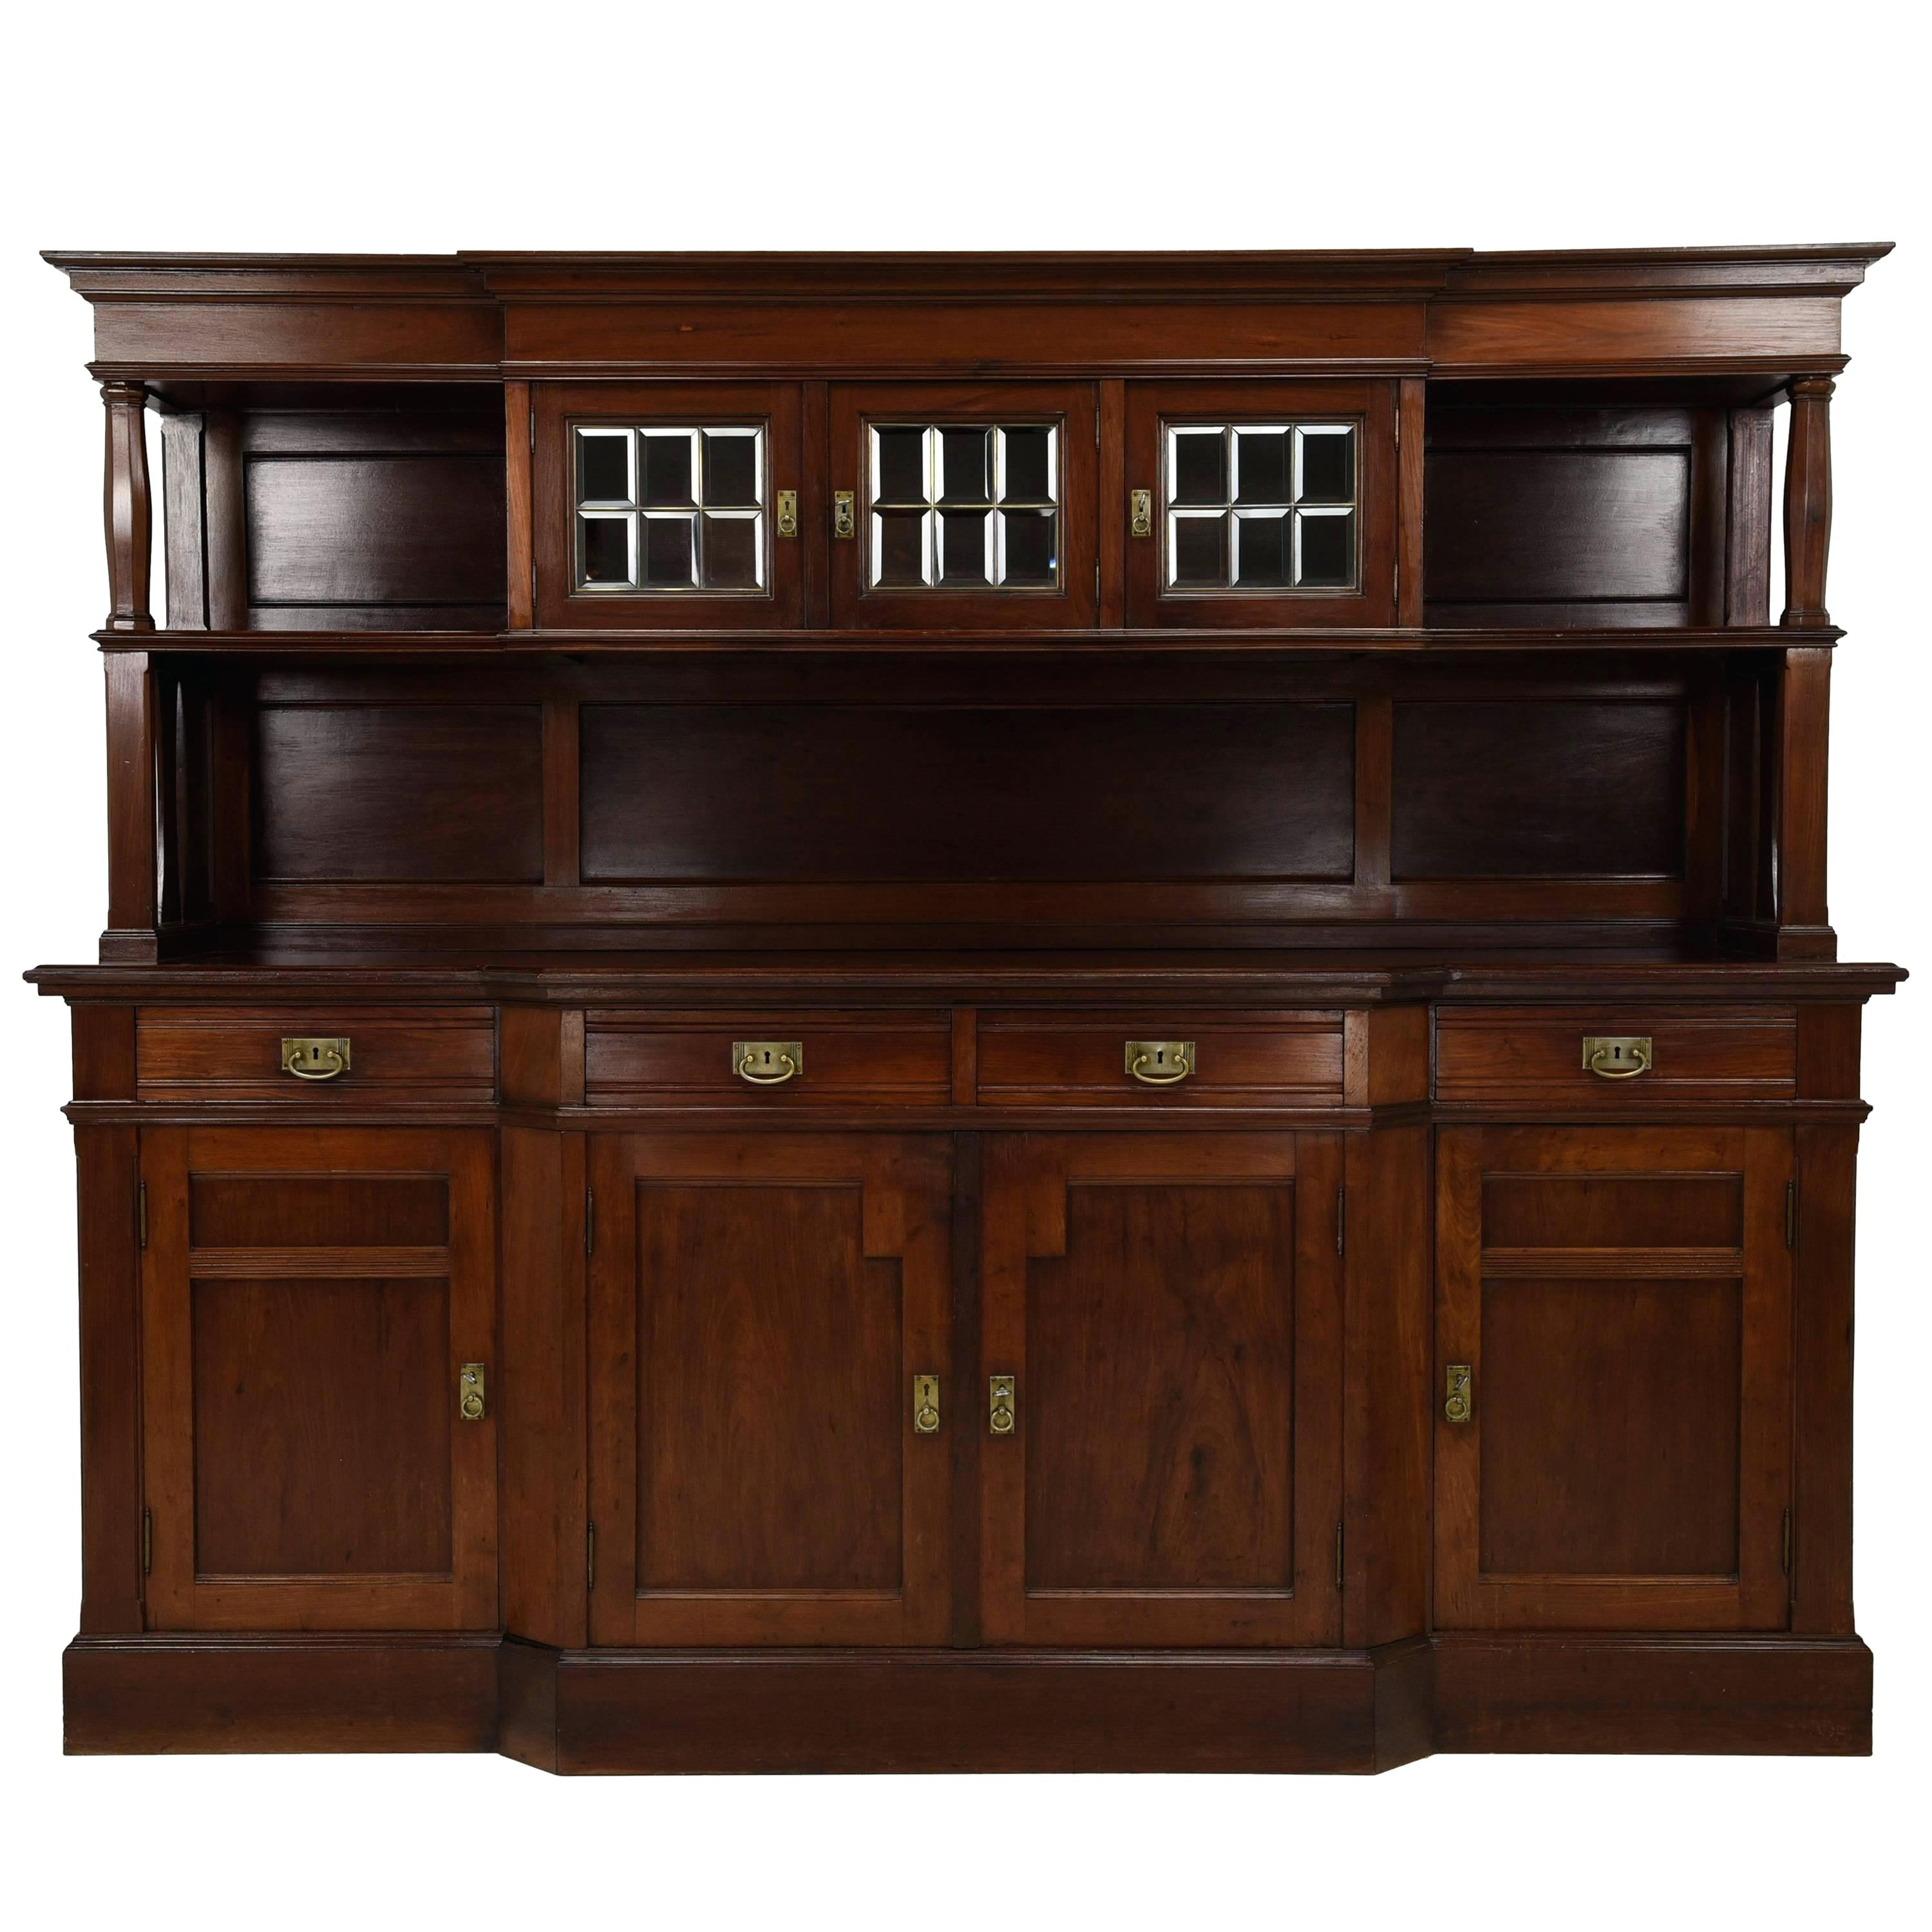 Buffet Cabinet with regard to Solid And Composite Wood Buffets In Cappuccino Finish (Image 4 of 30)